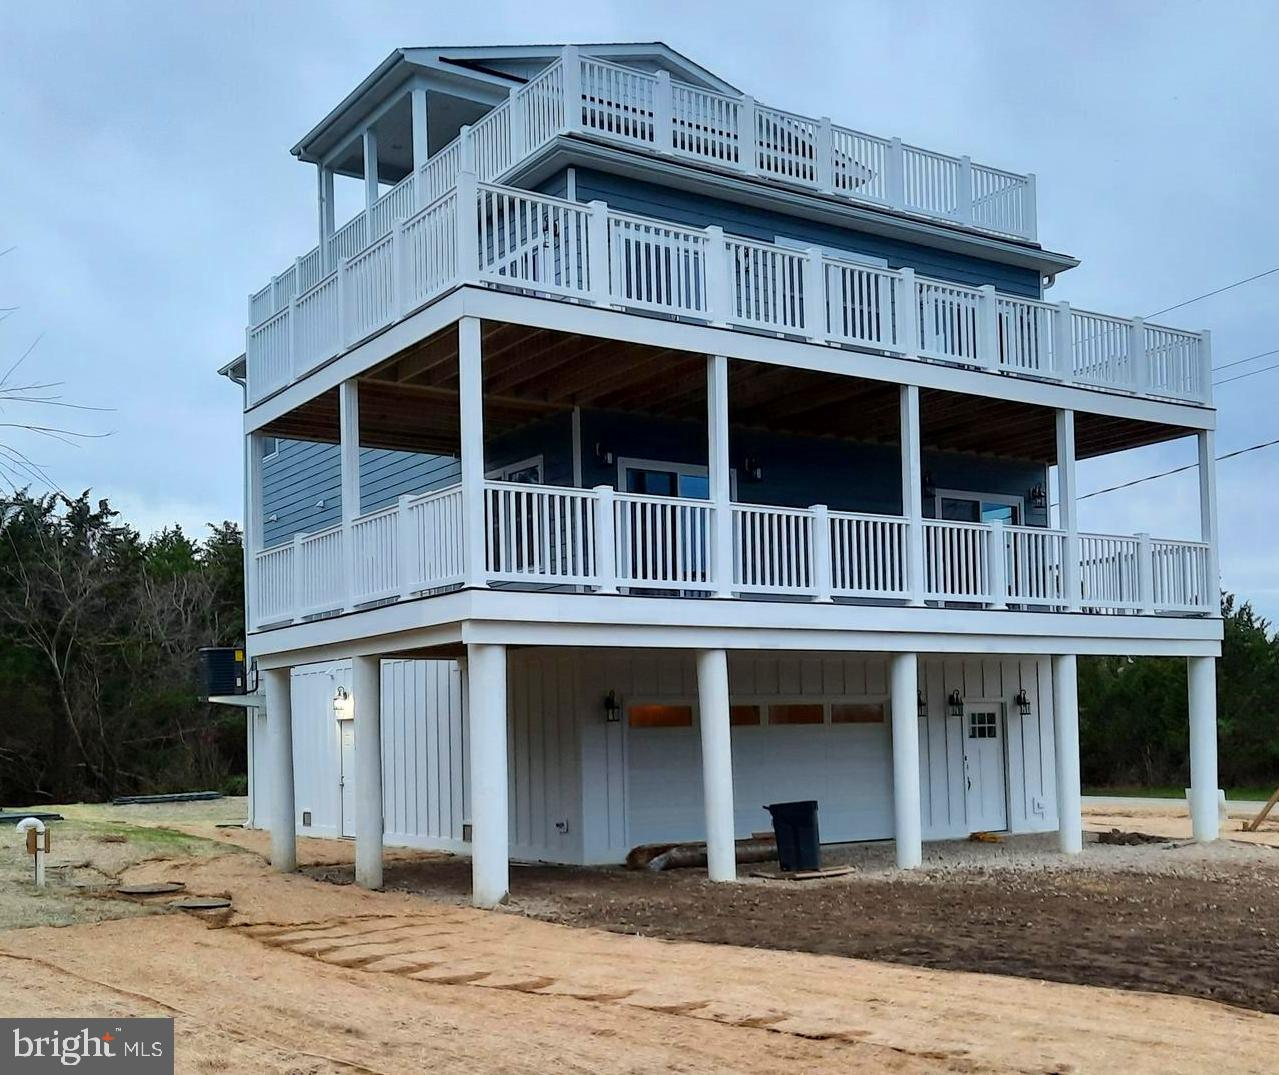 New Construction Custom Beach Home completion ***3/01/2021 being built in Slaughter Beach Delaware starting at $749,900. There are amazing views of the National Wildlife Refuge and the Delaware Bay that will take your breath away.  This 4 bedroom Custom Home with 3.5 baths, Roof Top Observatory, Outside Shower and 2,000 sq.ft of Decks. This gives a 360-degree view of the area.  Top-level has a large living room, roomy dining room all with 9ft ceilings, crown molding, and buyers' choice of flooring. The Kitchen is large with high-end appliances, slow close cabinets, and plenty of space on the island. Next to the kitchen walks out to a large wrap around deck.  Beautiful master suite w/ gorgeously done bath w/ soaking tub, separate shower, and double vanities. The remaining 3 spacious bedrooms and 2 baths are on one floor below.  One of the three bedrooms is a large 2nd Master Bedroom with Master Bath & Walk-In Closet.  Also, the Laundry Room is contained on this floor & a large wrap-around deck.  This beach house has a specious elevator that reaches all floors.  Security System & Smart Home Capabilities throughout.  Private & Public Boat Launch Steps Away.  Still, time to make changes and pick finishes in this 3,000 sq. ft Custom Beach Home with amazing views!